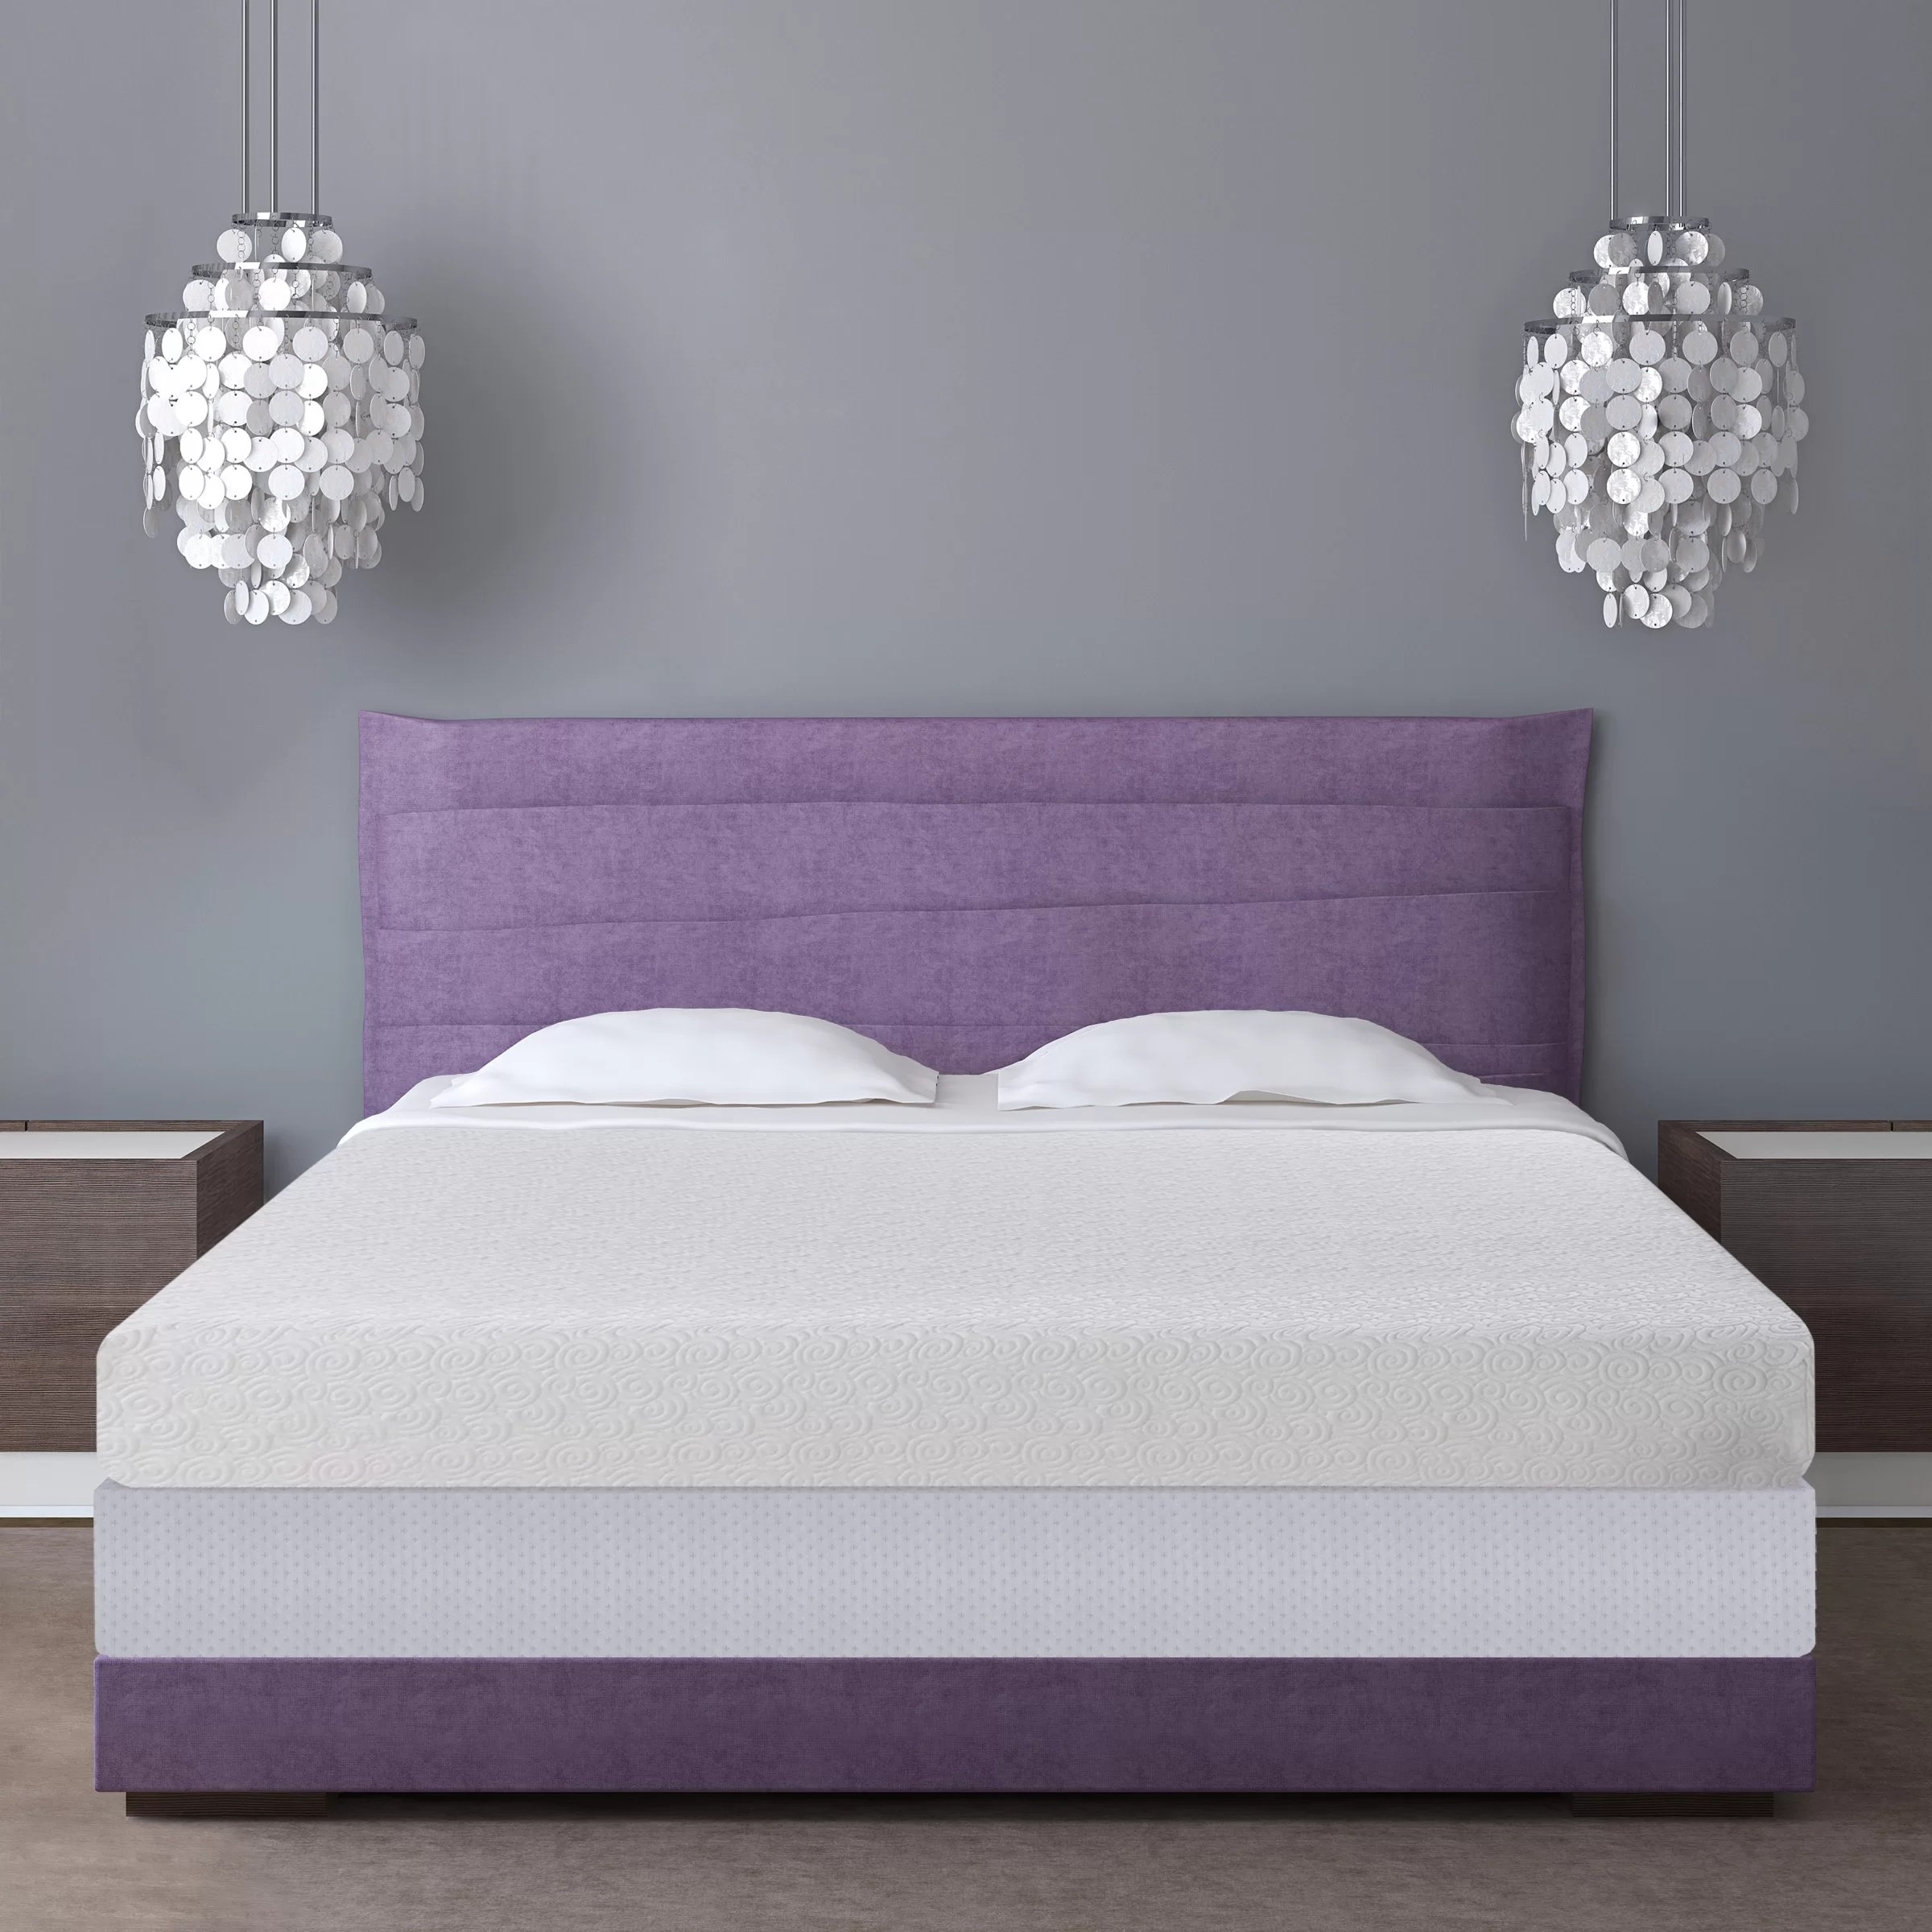 Best Foam Matress 7